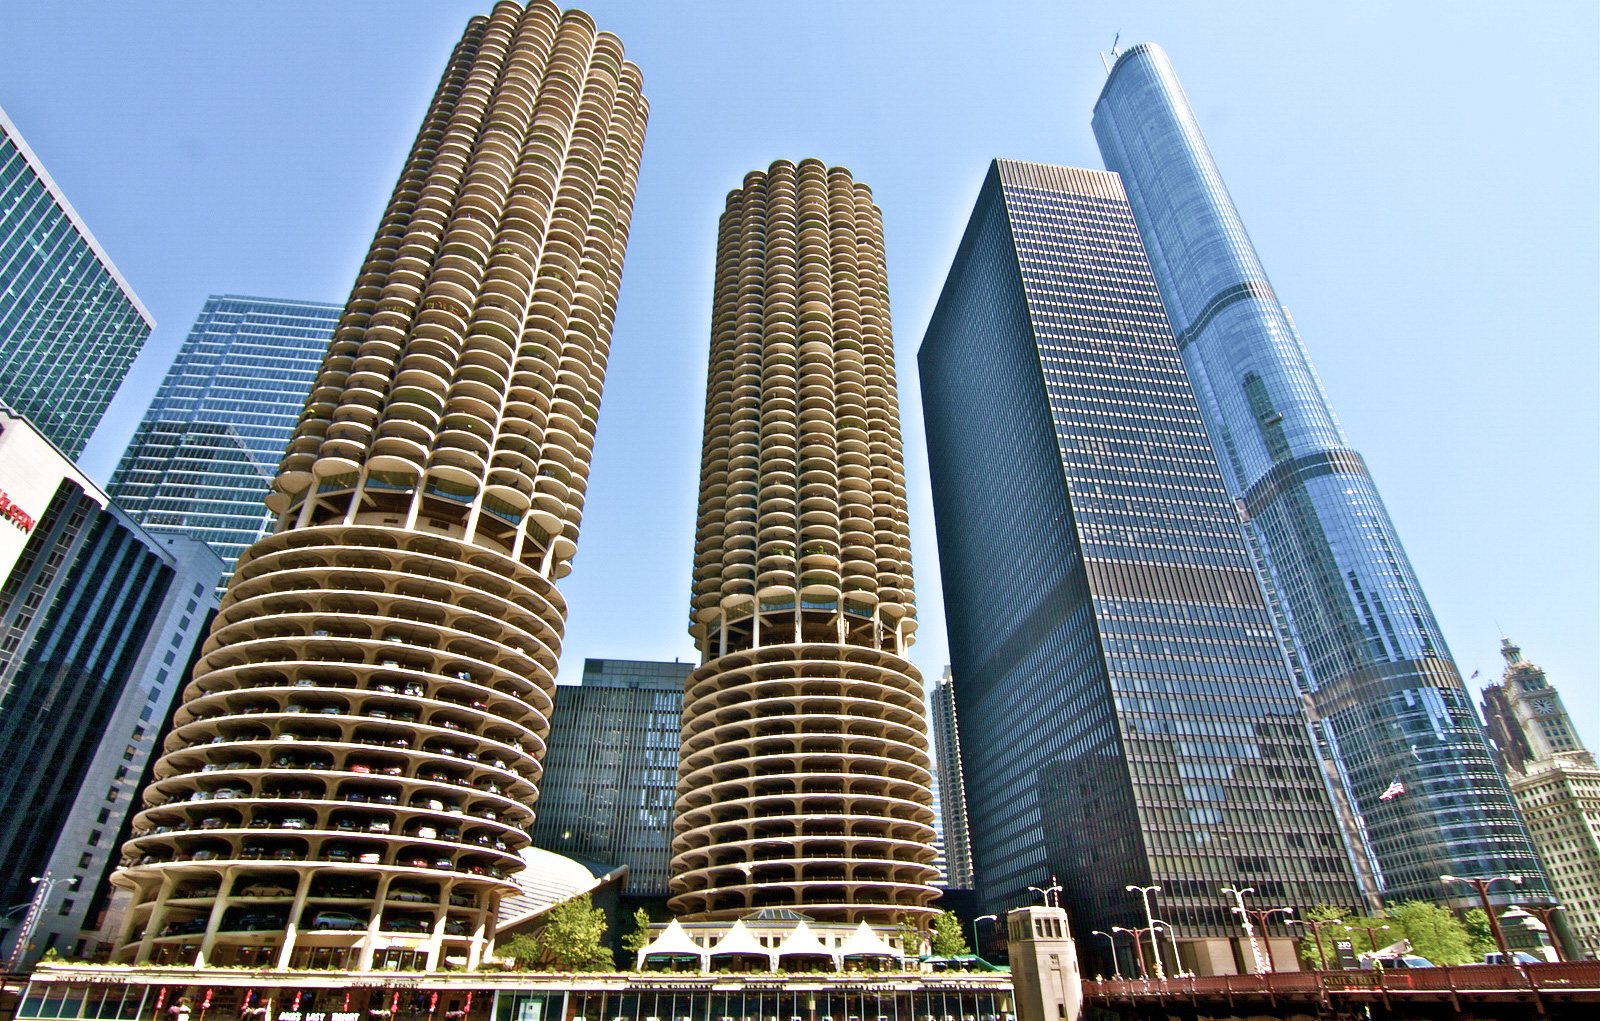 ... What U.S. City Has The Best Architecture? Marina City Trump Tower ...